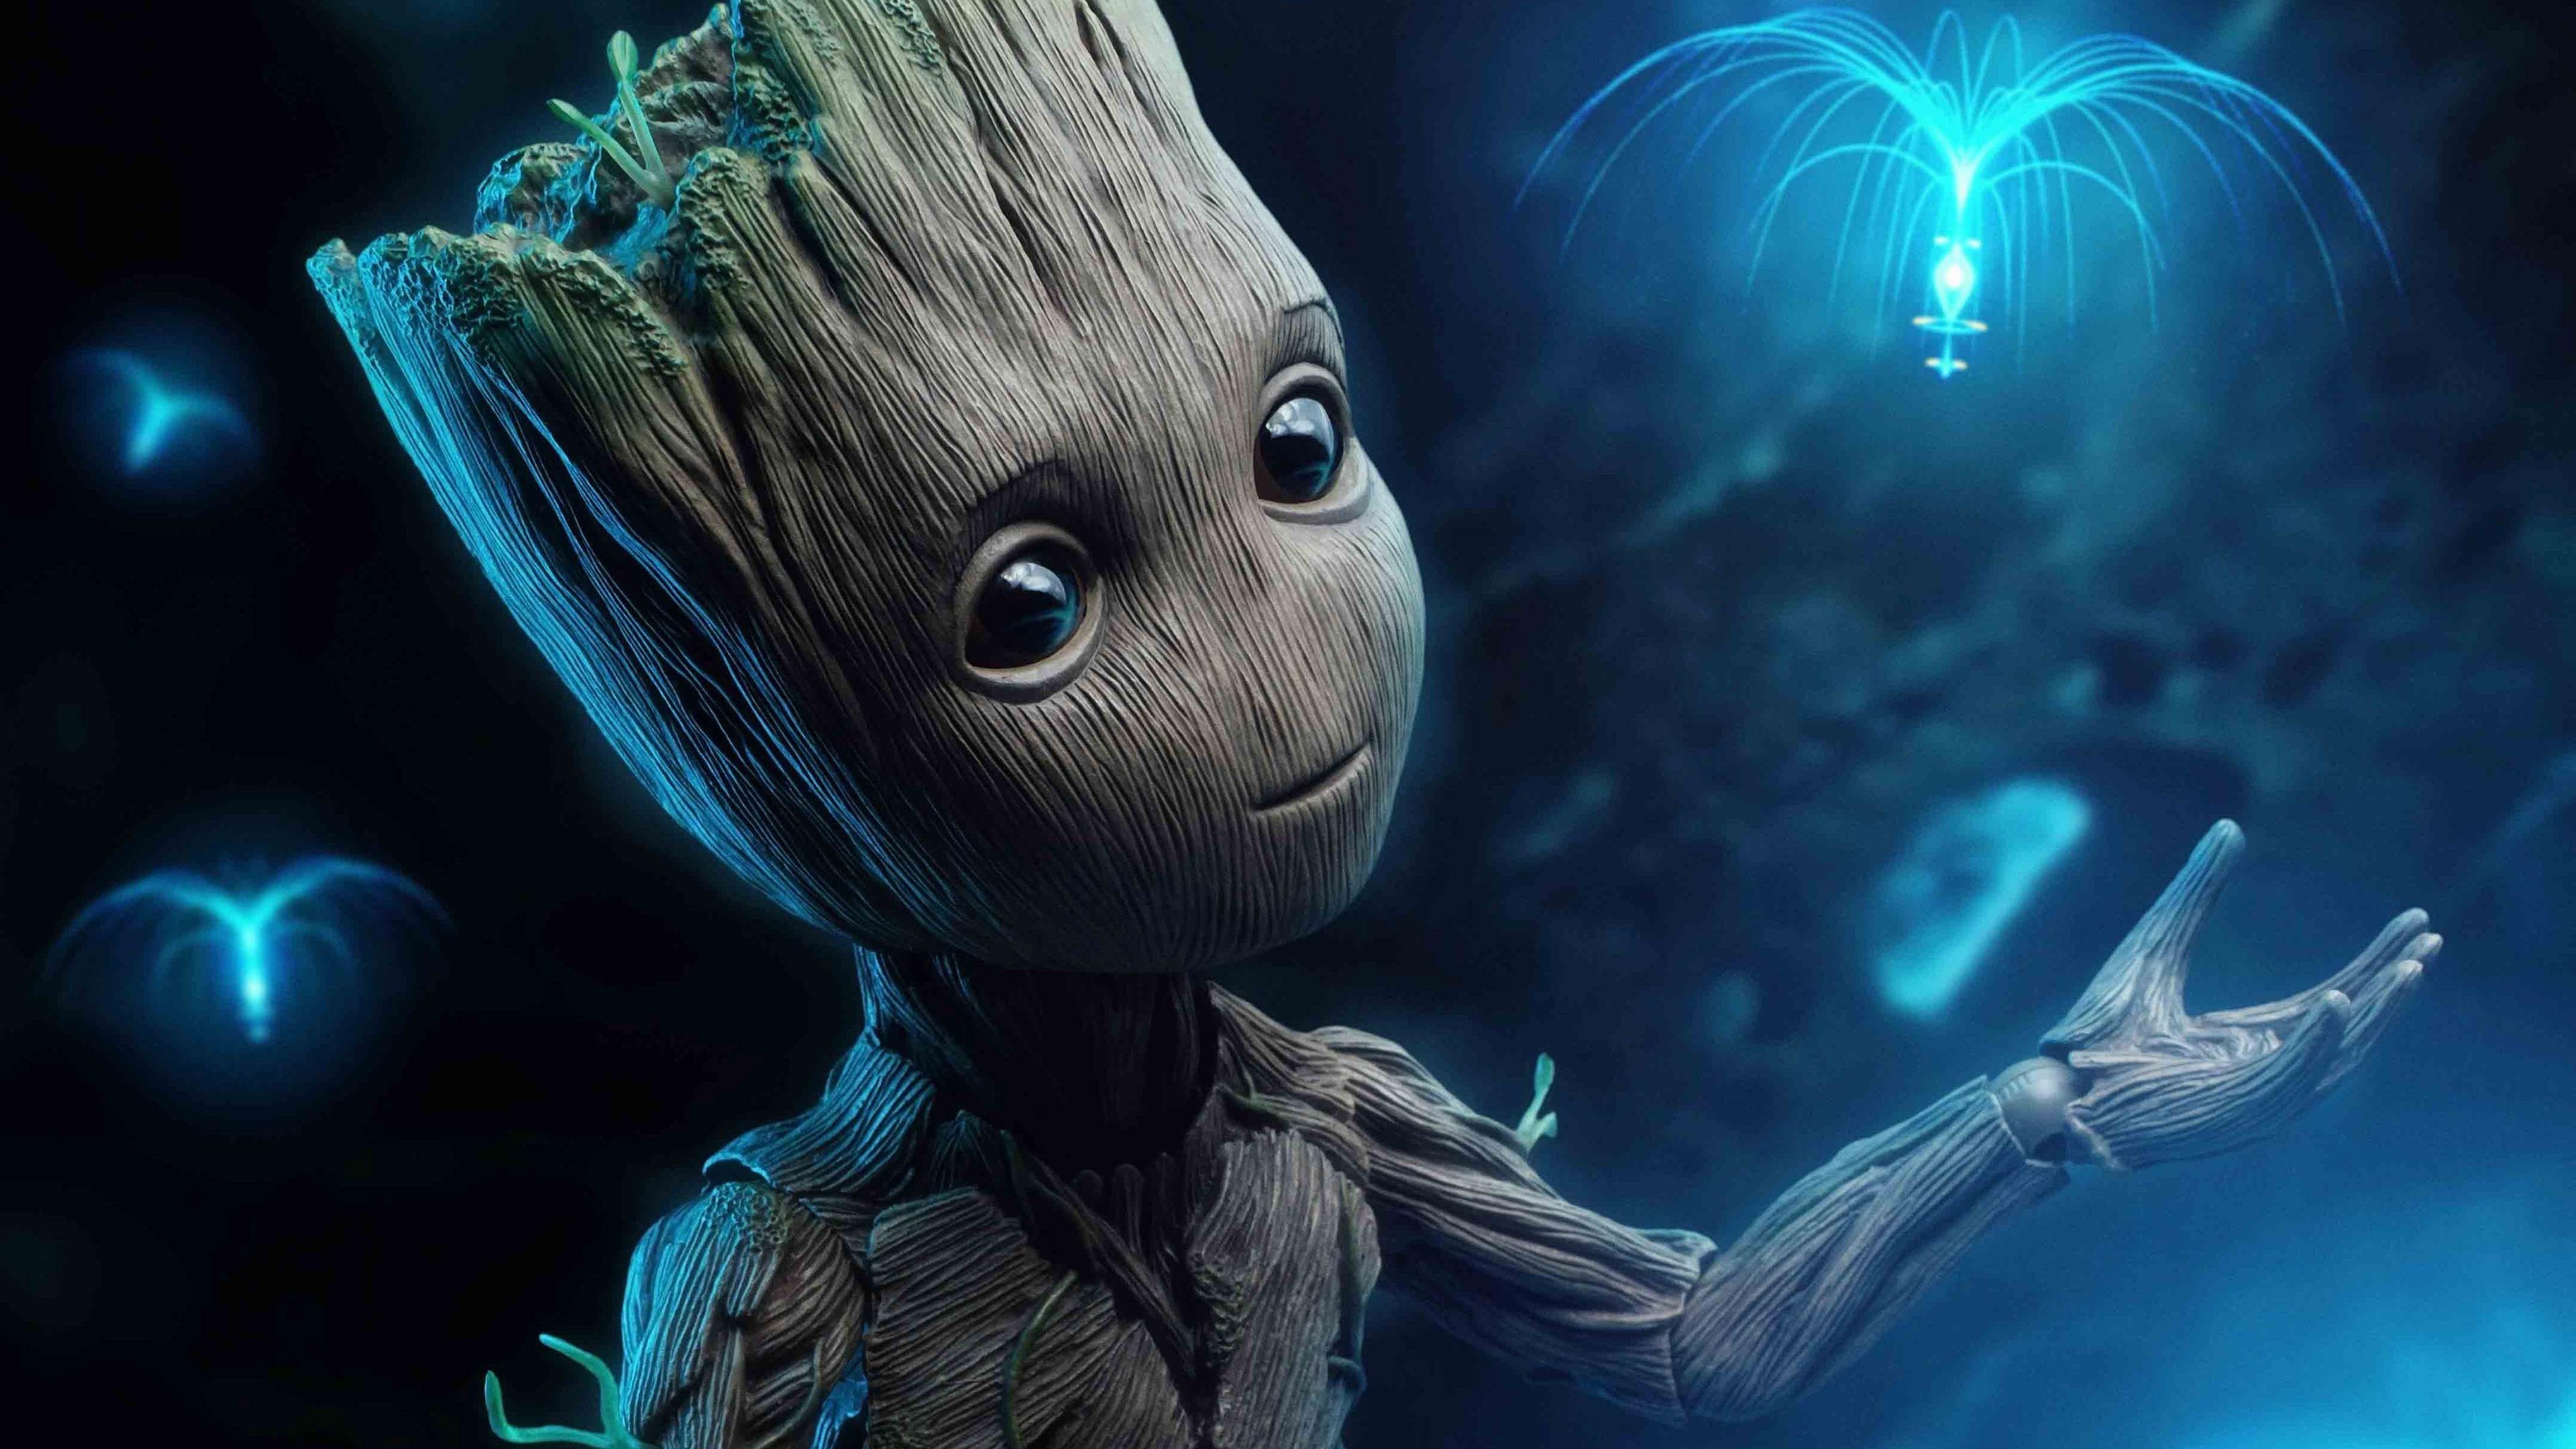 Baby Groot 4k superheroes wallpapers, hd-wallpapers, baby groot .